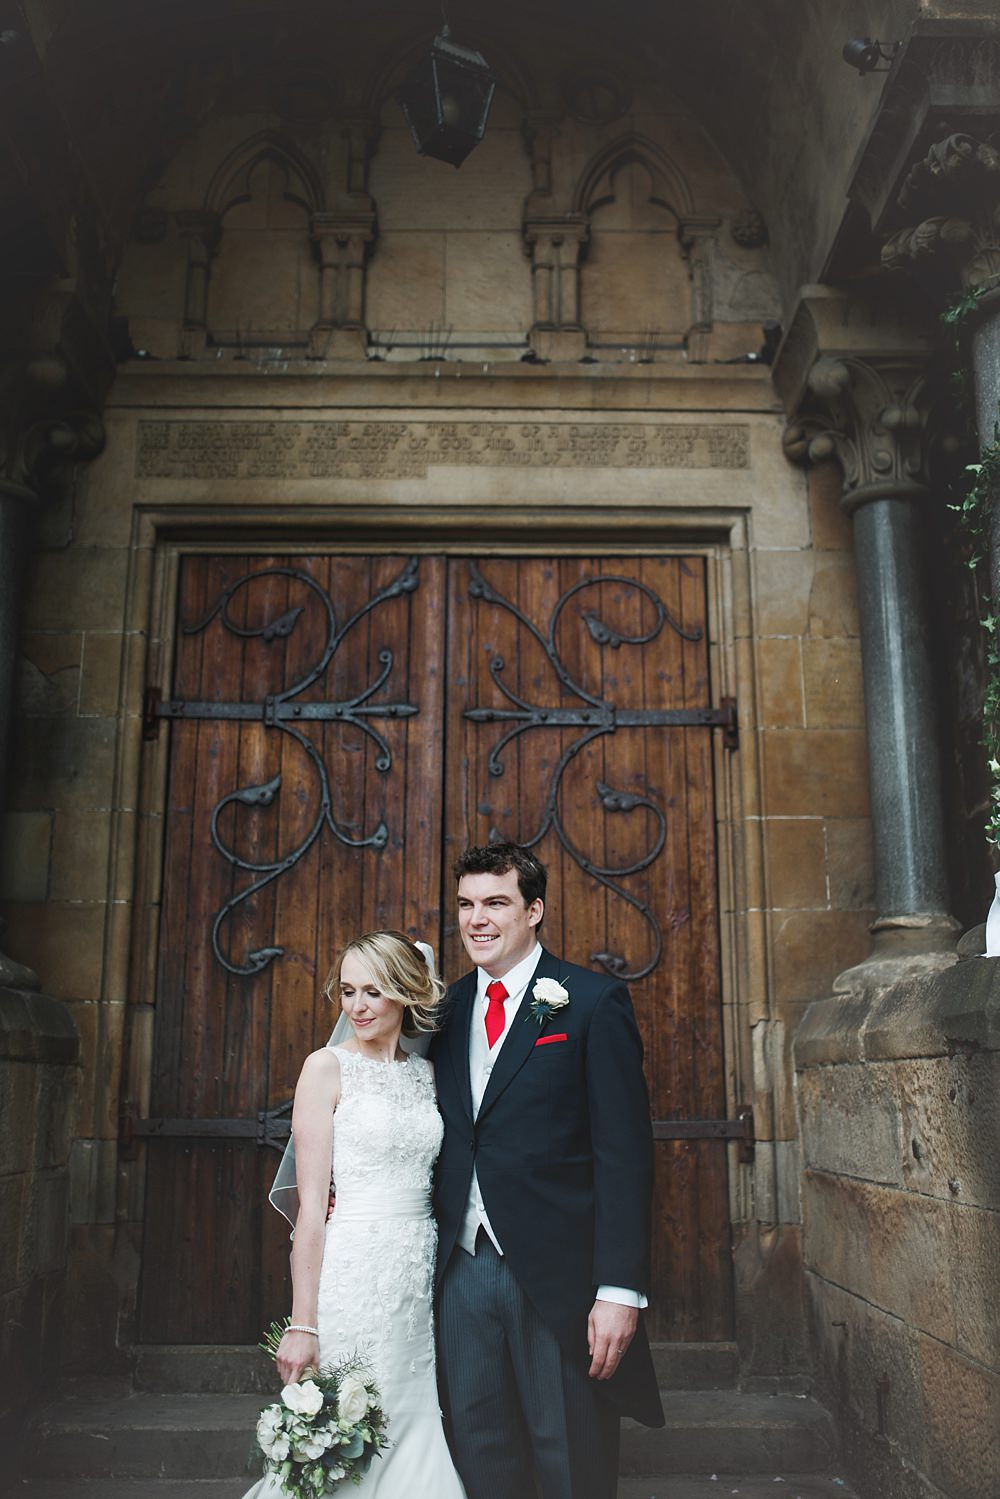 natural wedding photographers glasgow 8-40.jpg